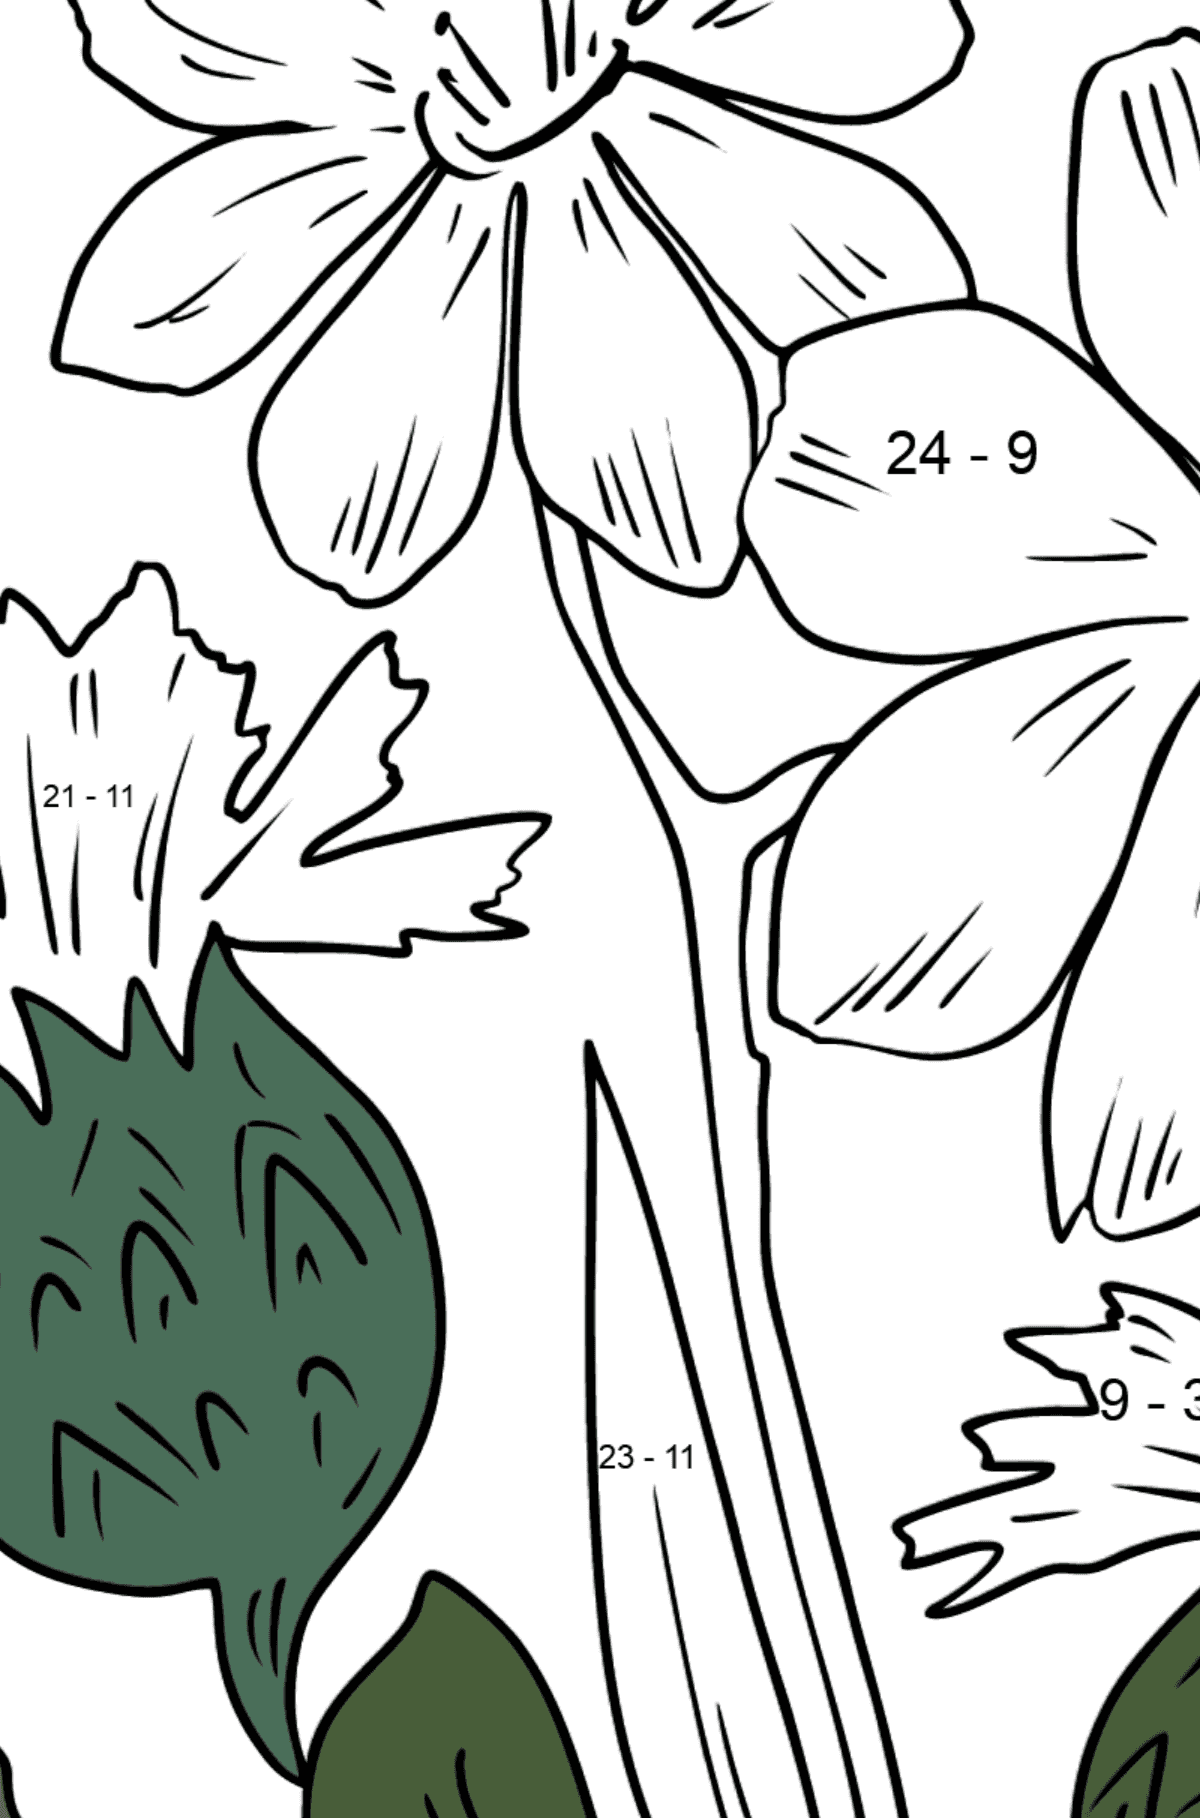 Flower Coloring Page - flowers in the meadow - Math Coloring - Subtraction for Kids